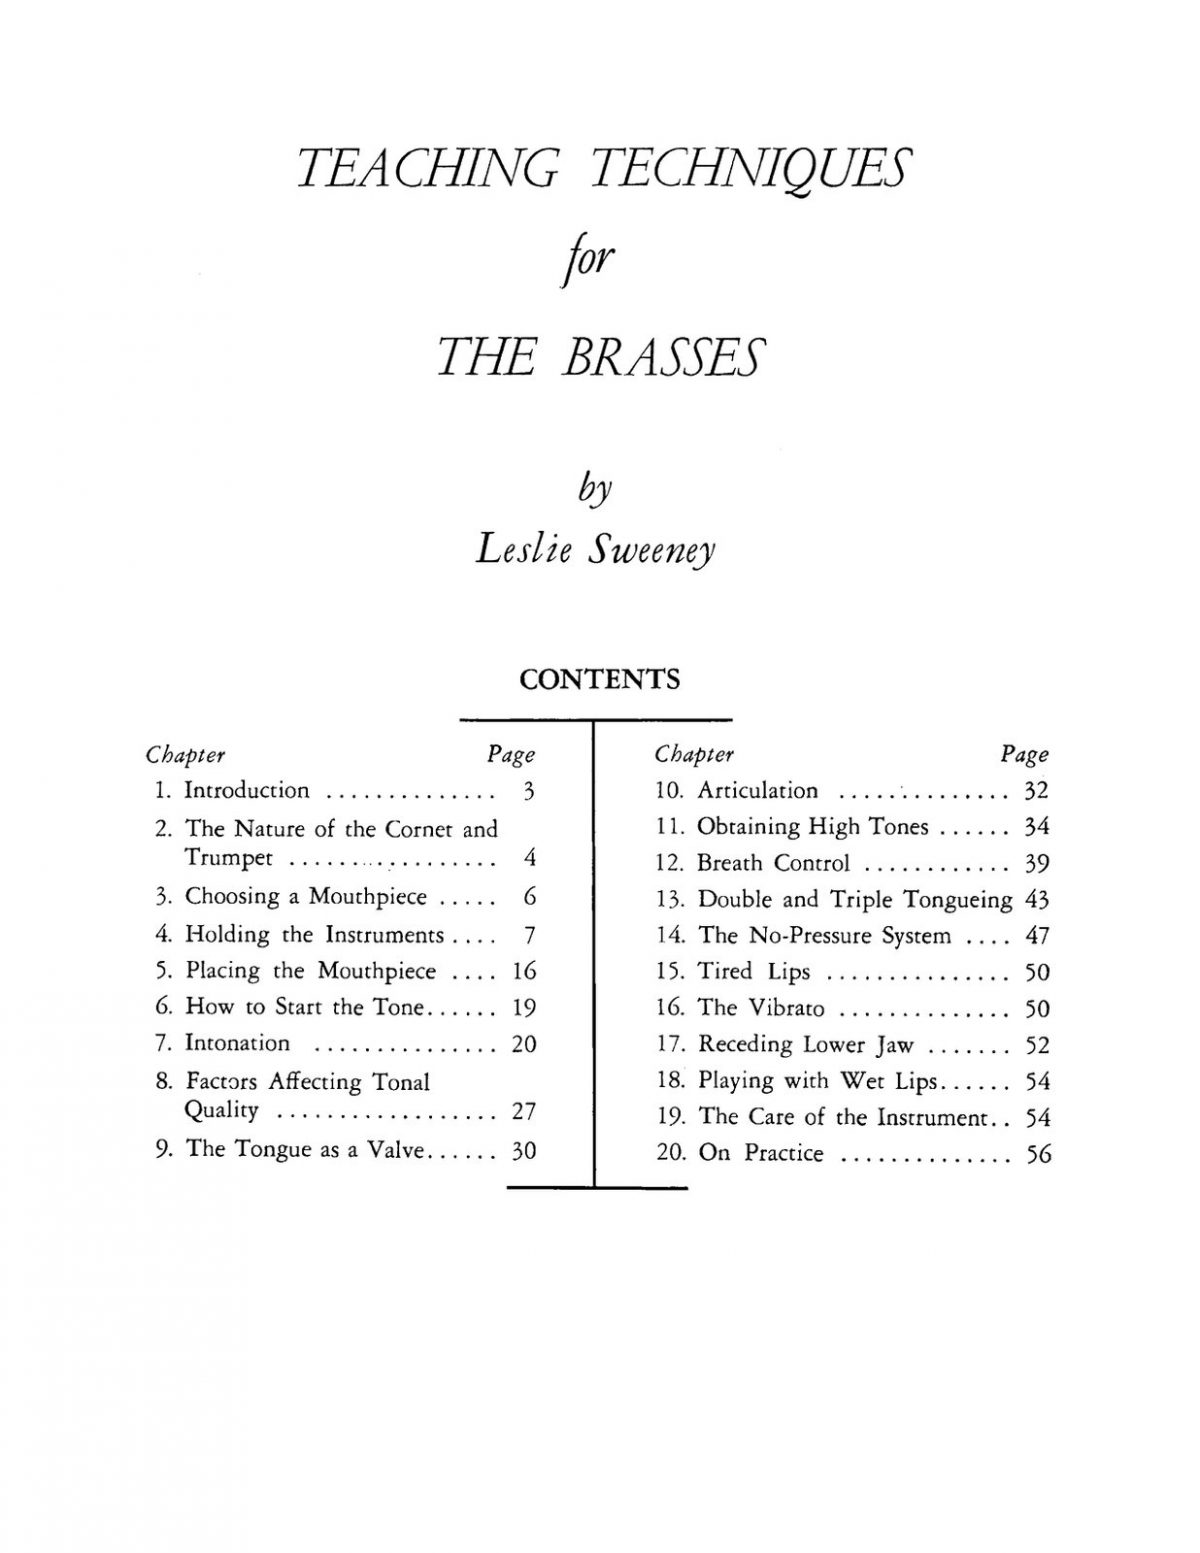 Sweeney, Teaching Techniques for The Brasses-p03